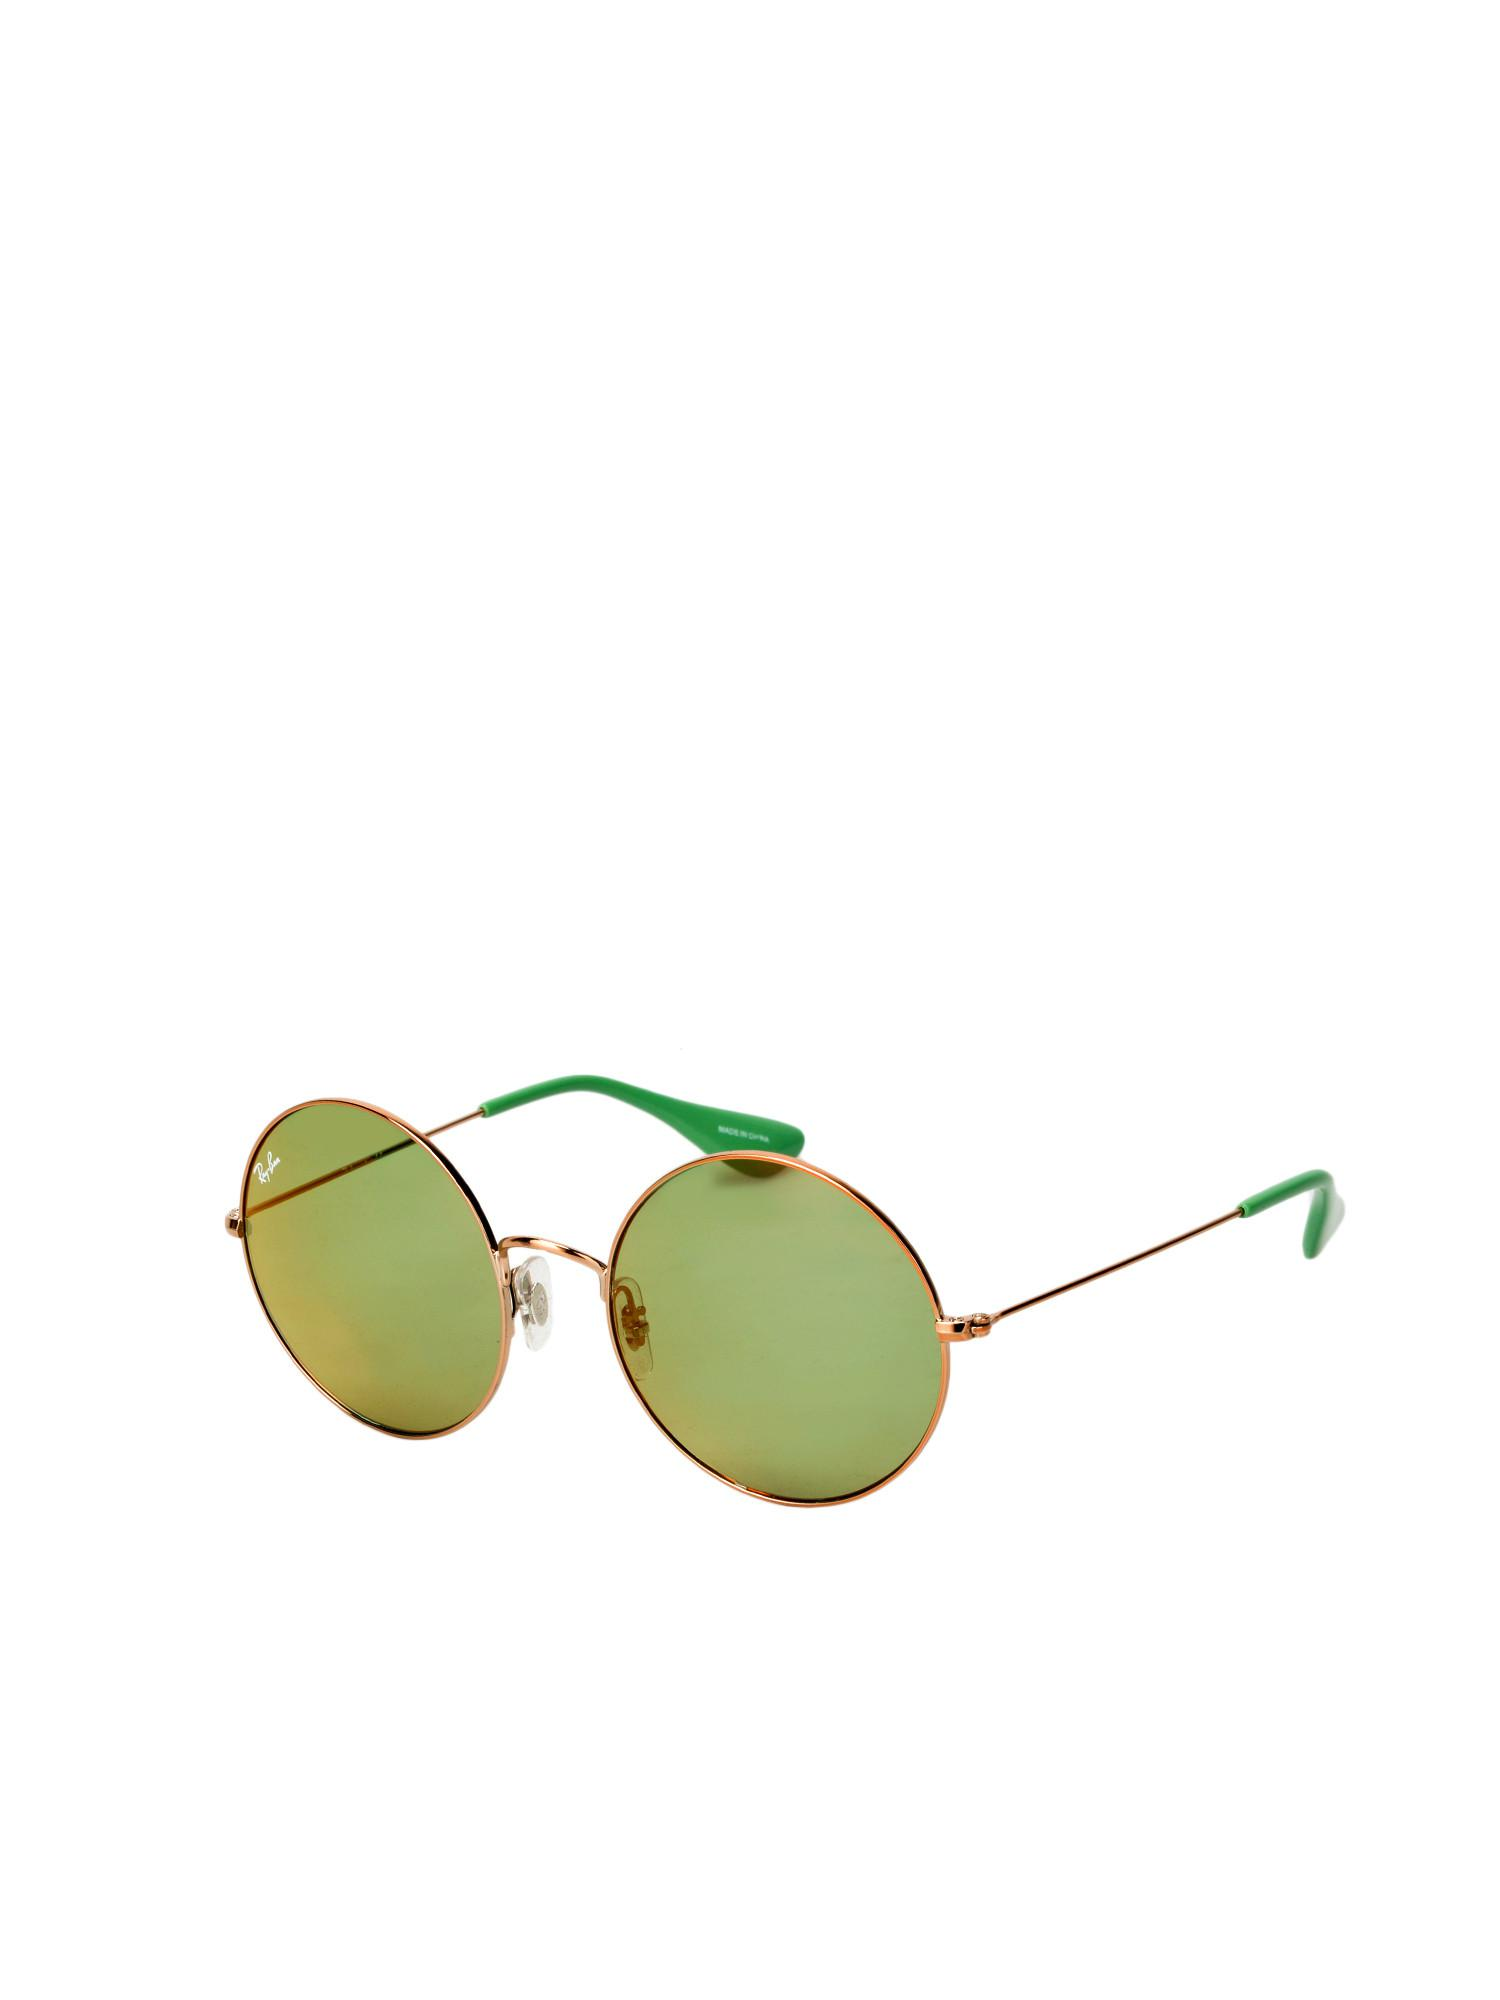 13e9ff9ebe0 Ray-Ban - Rb 3592 9035c7 Bronze Copper green Classic - Lyst. View fullscreen